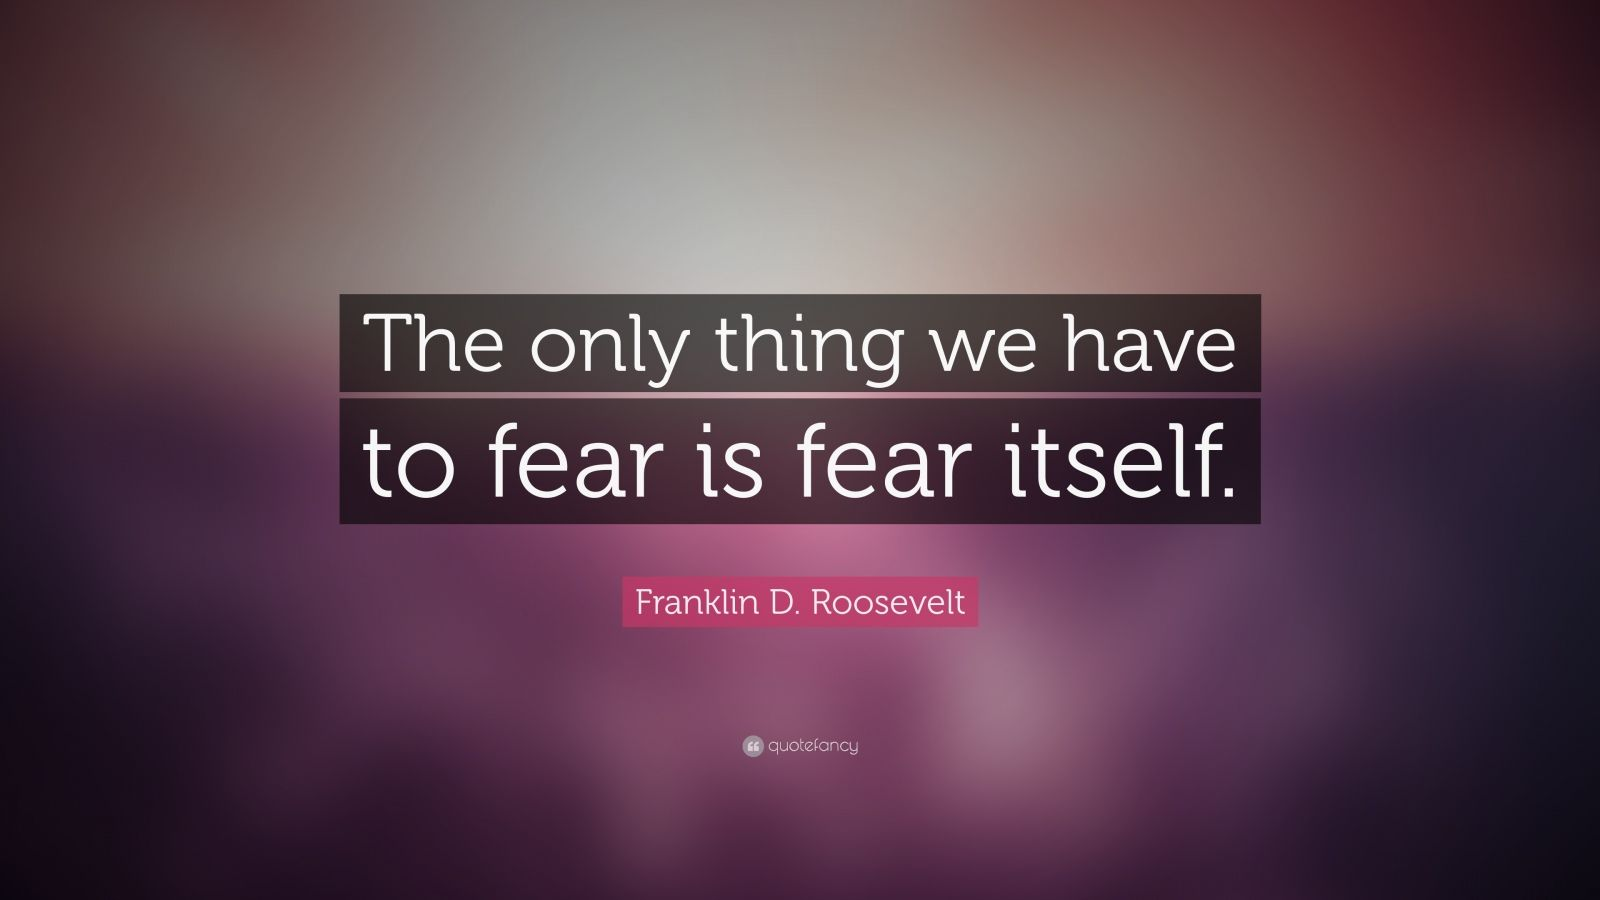 Franklin D Roosevelt Quotes Franklin Droosevelt Quotes 100 Wallpapers  Quotefancy